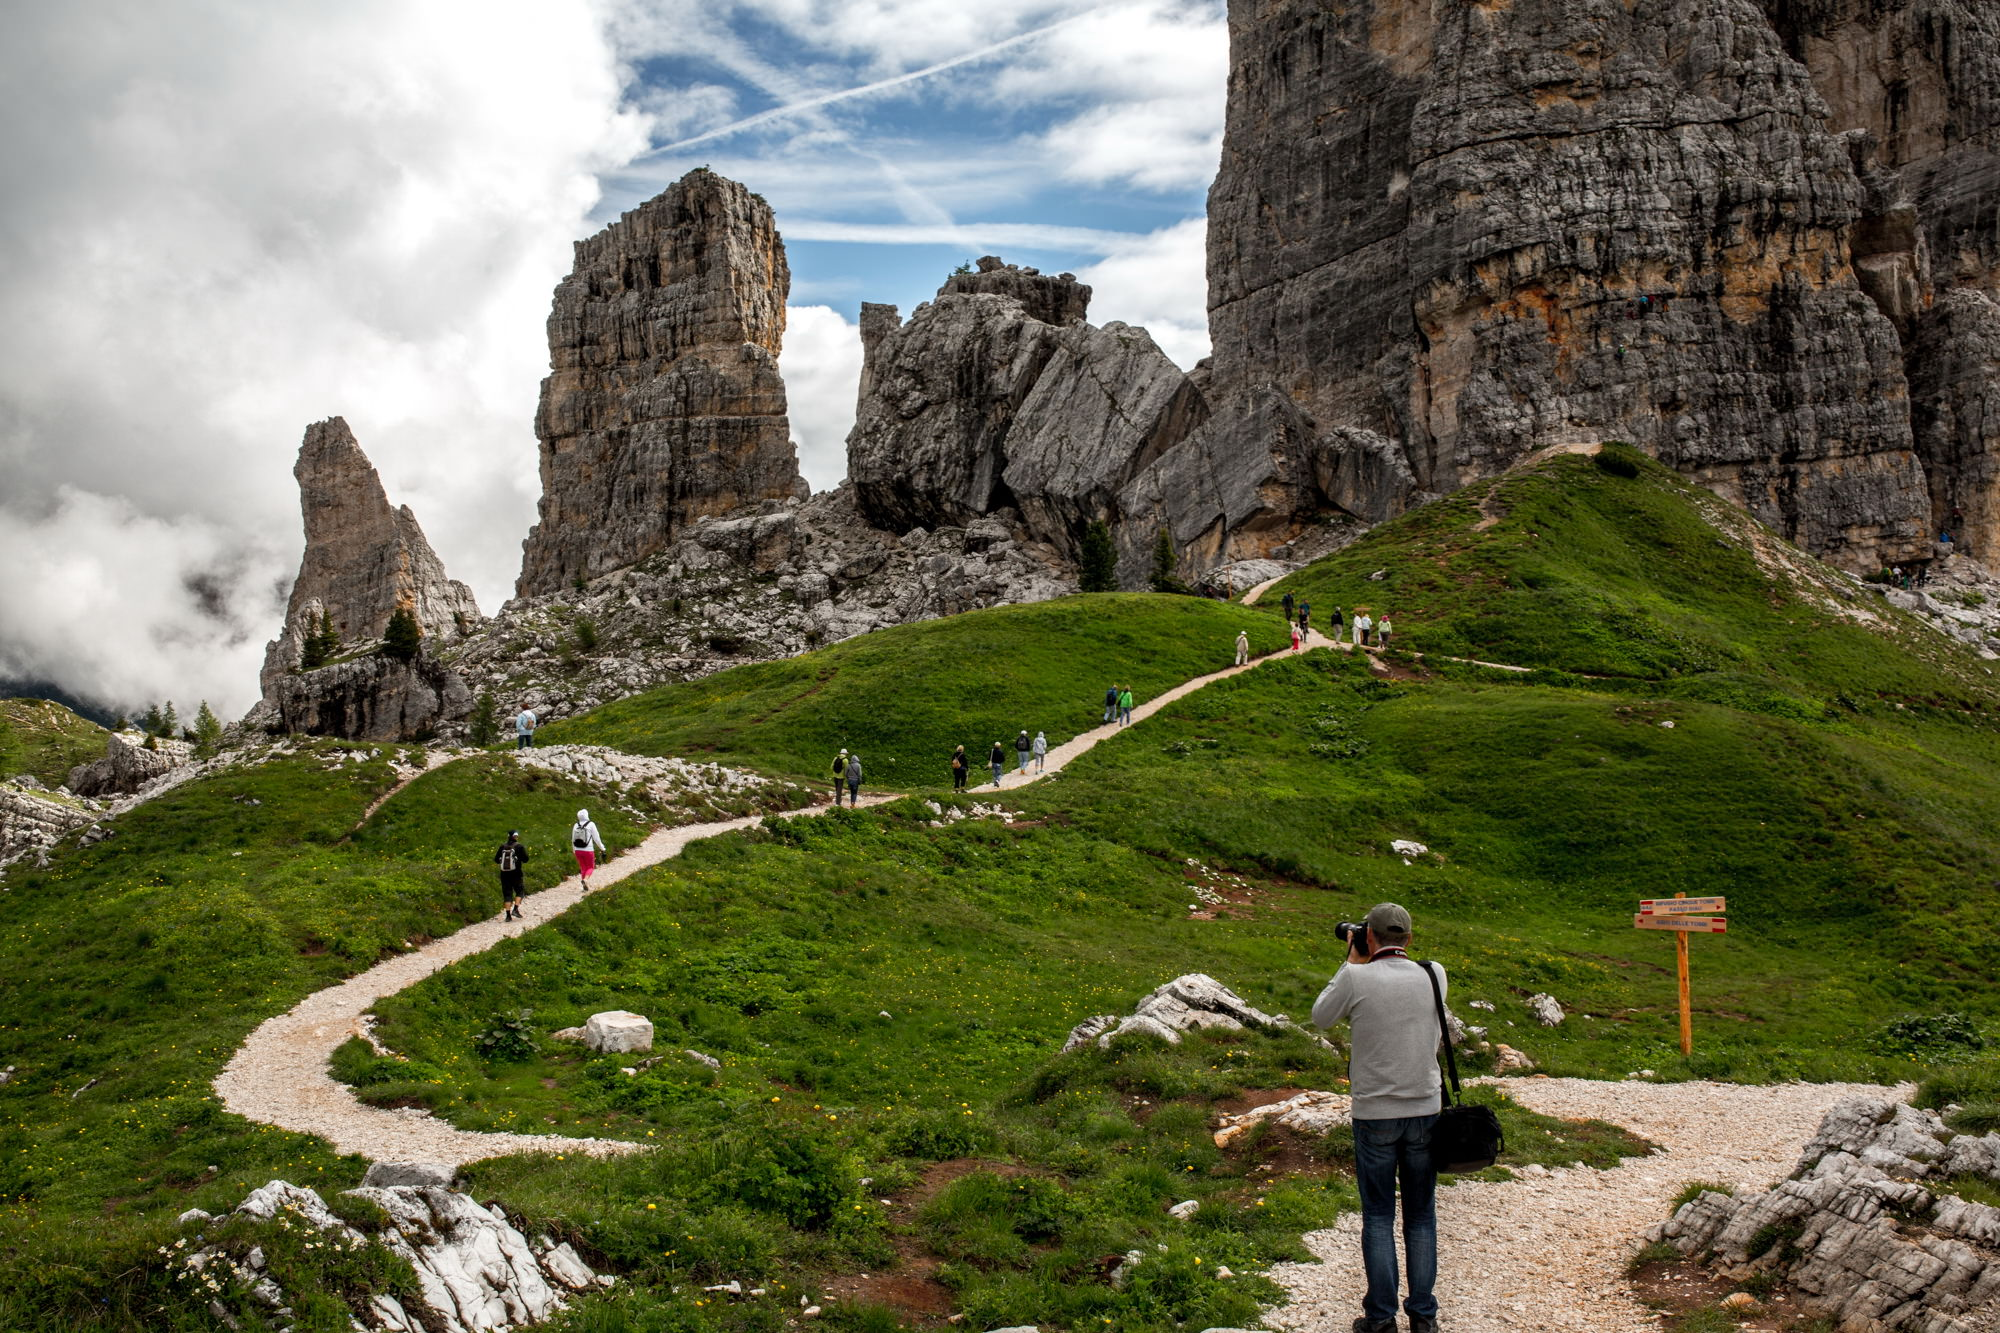 The Alps 2014-Italy-Dolomites 16